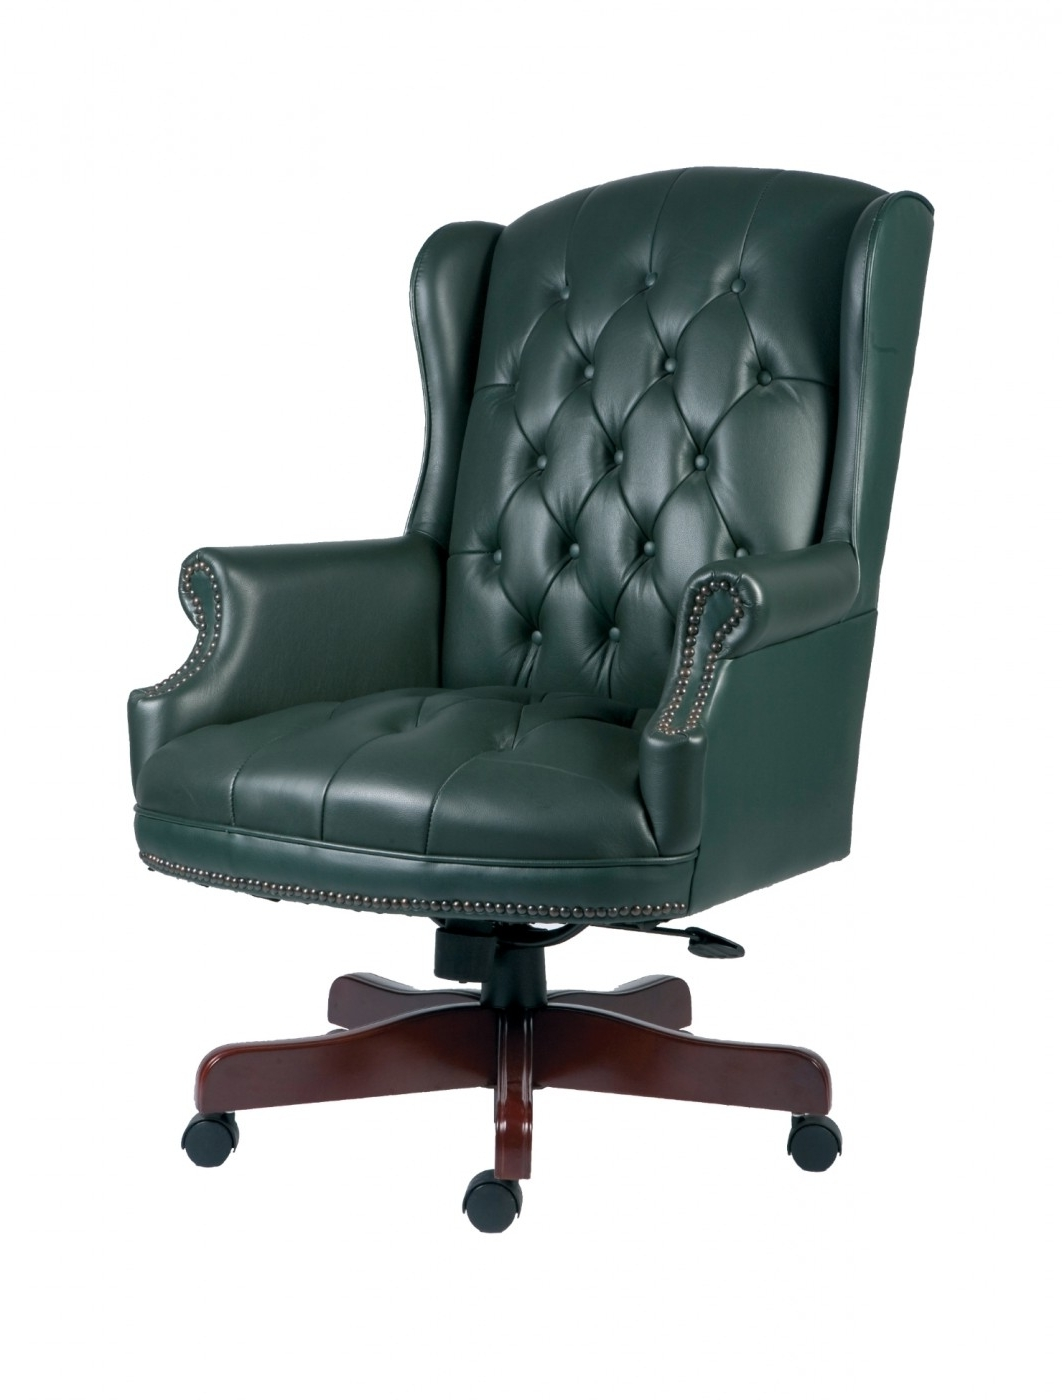 Best And Newest Green Leather Executive Office Chairs Throughout Teknik Chairman Leather Executive Chair B800 Green (View 2 of 20)